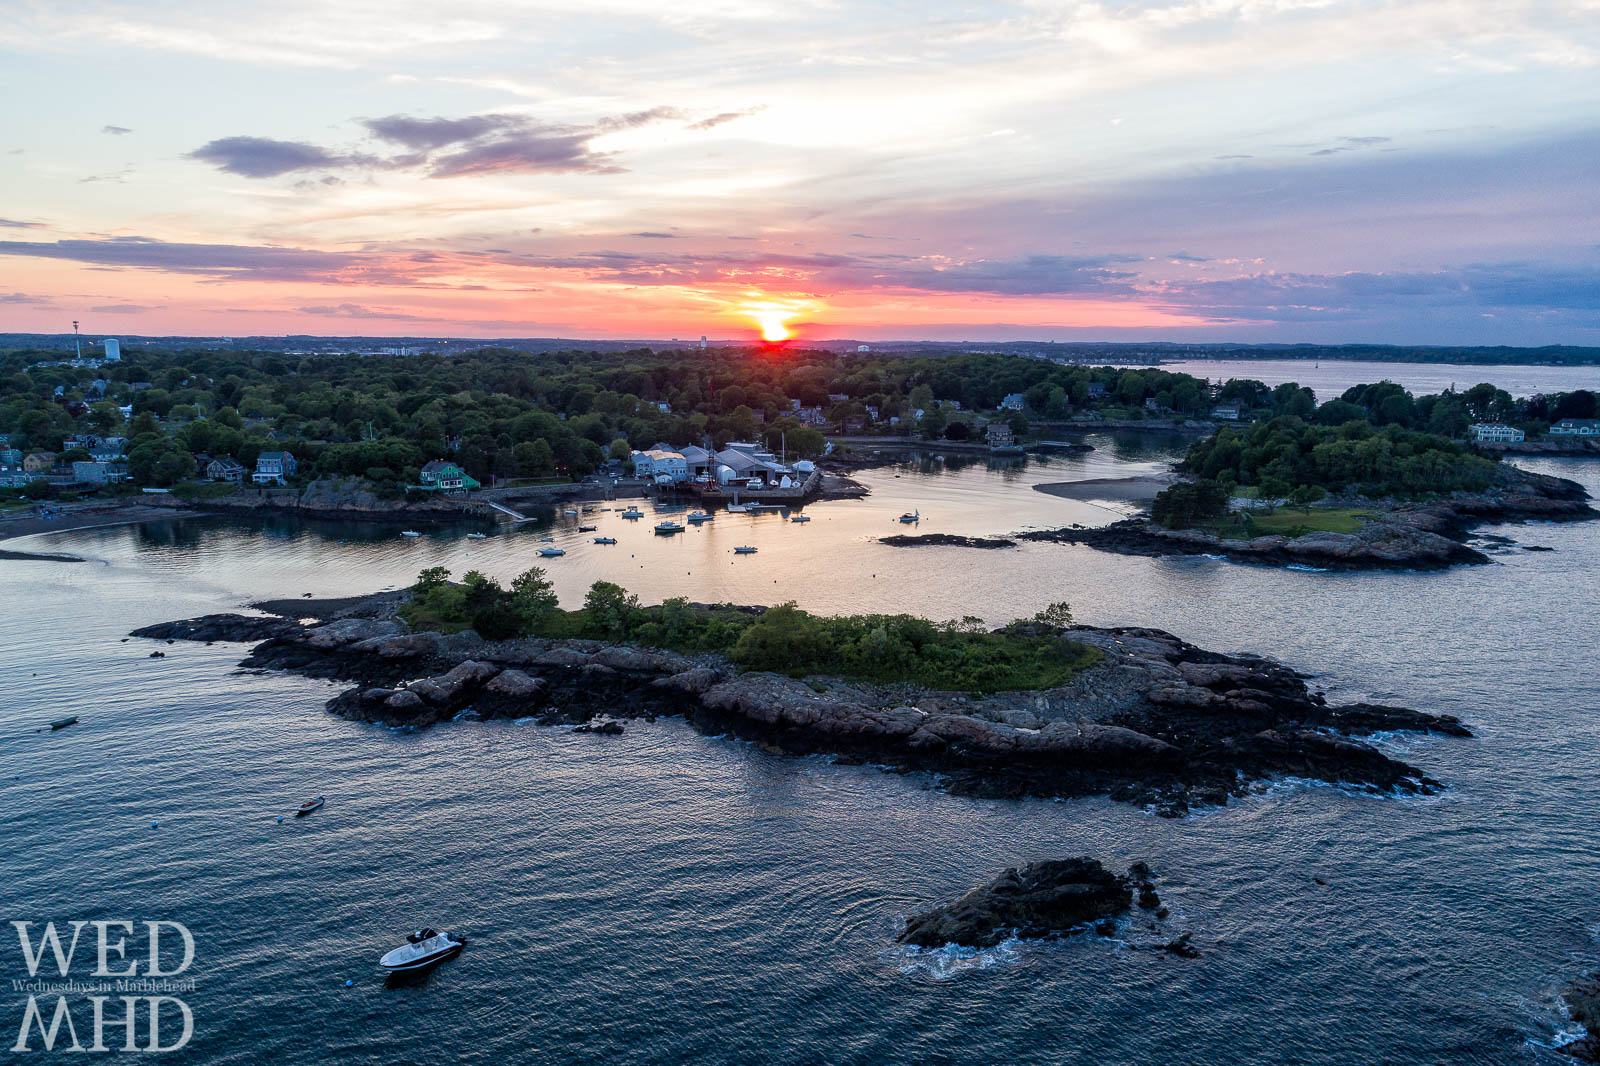 The last light of day reflects off Little Harbor in this Gerry Island sunset captured from above